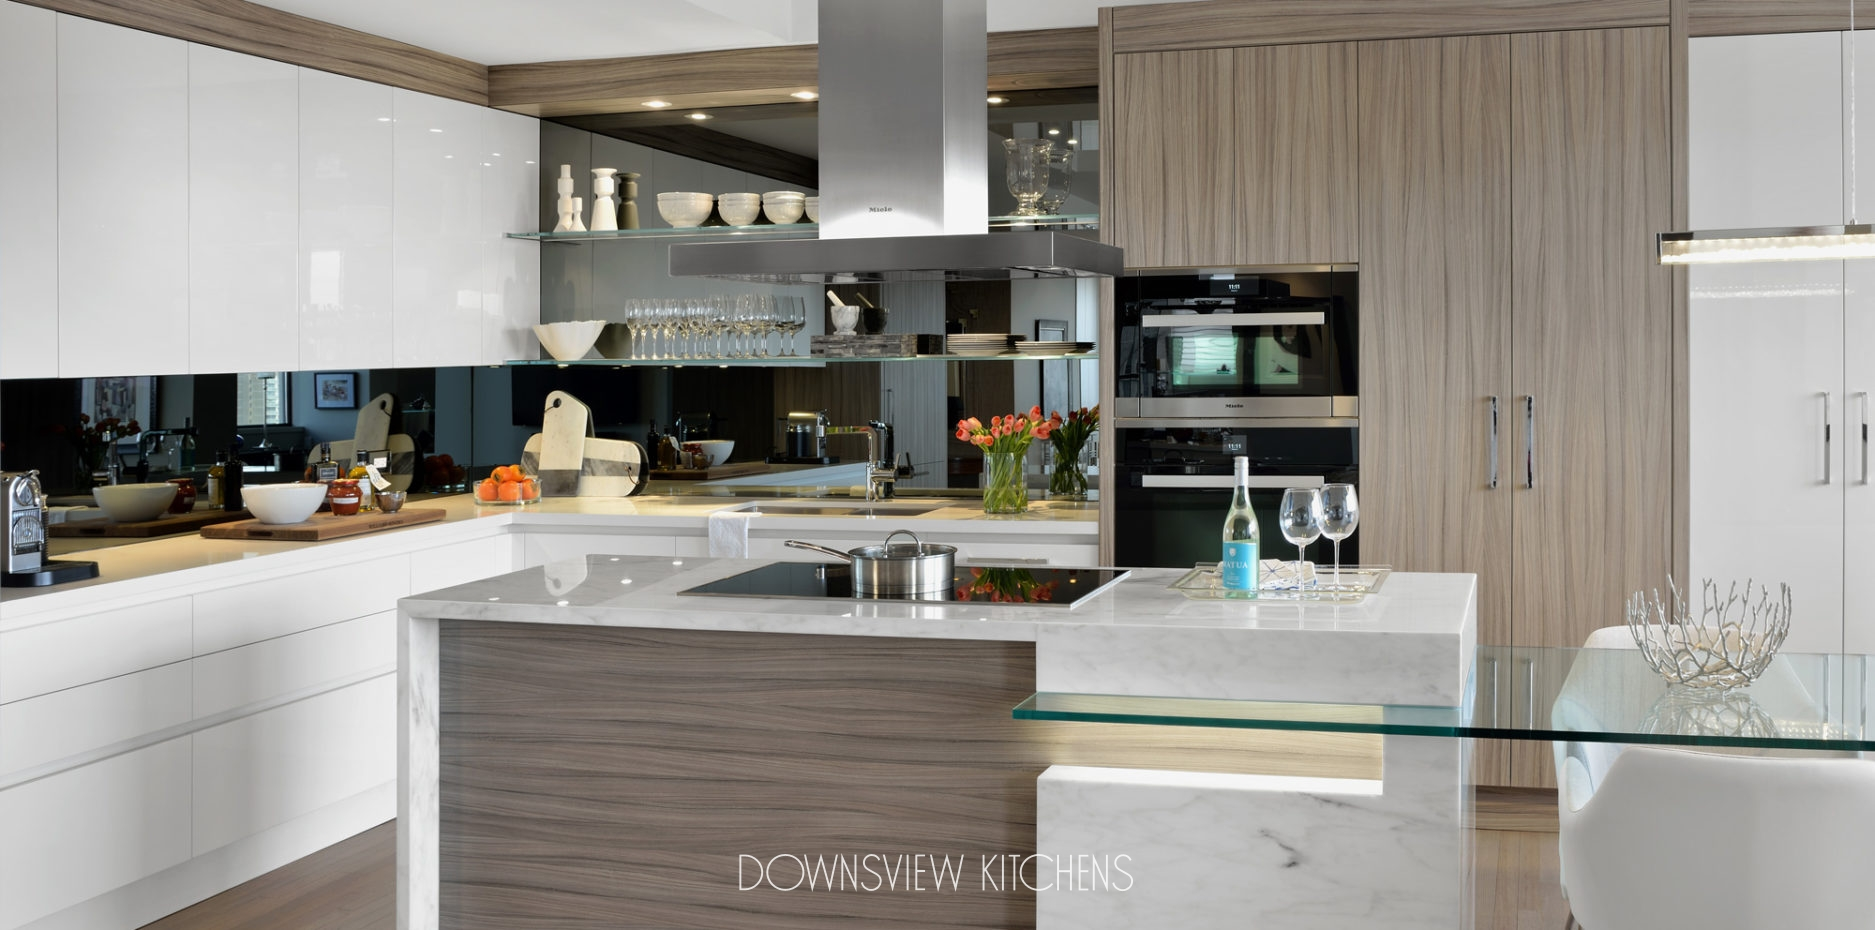 UPTOWN POSH Downsview Kitchens And Fine Custom Cabinetry - Posh kitchens